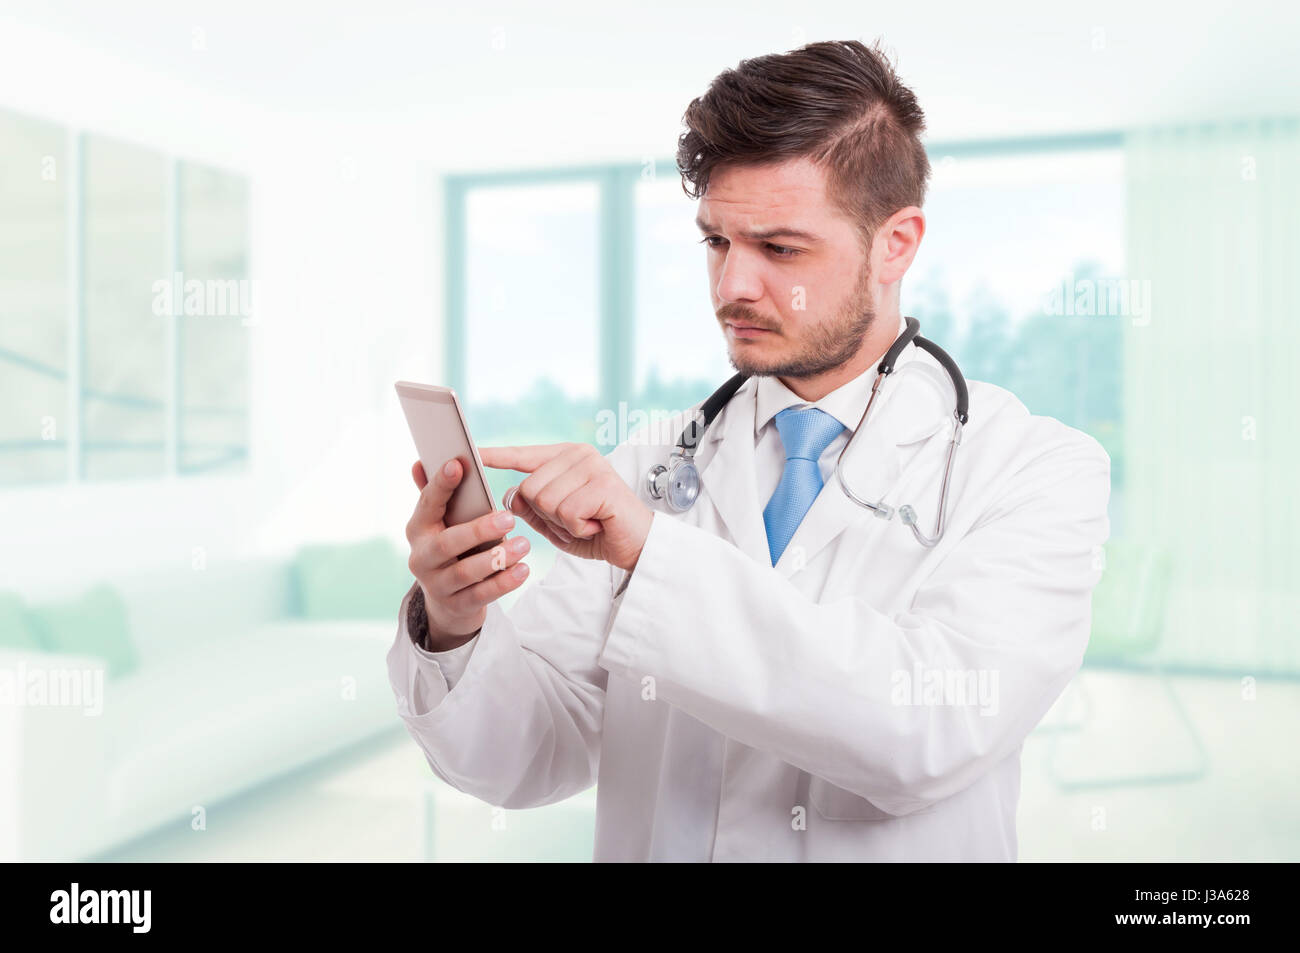 Modern doctor browsing or reading something on smartphone in his office - Stock Image